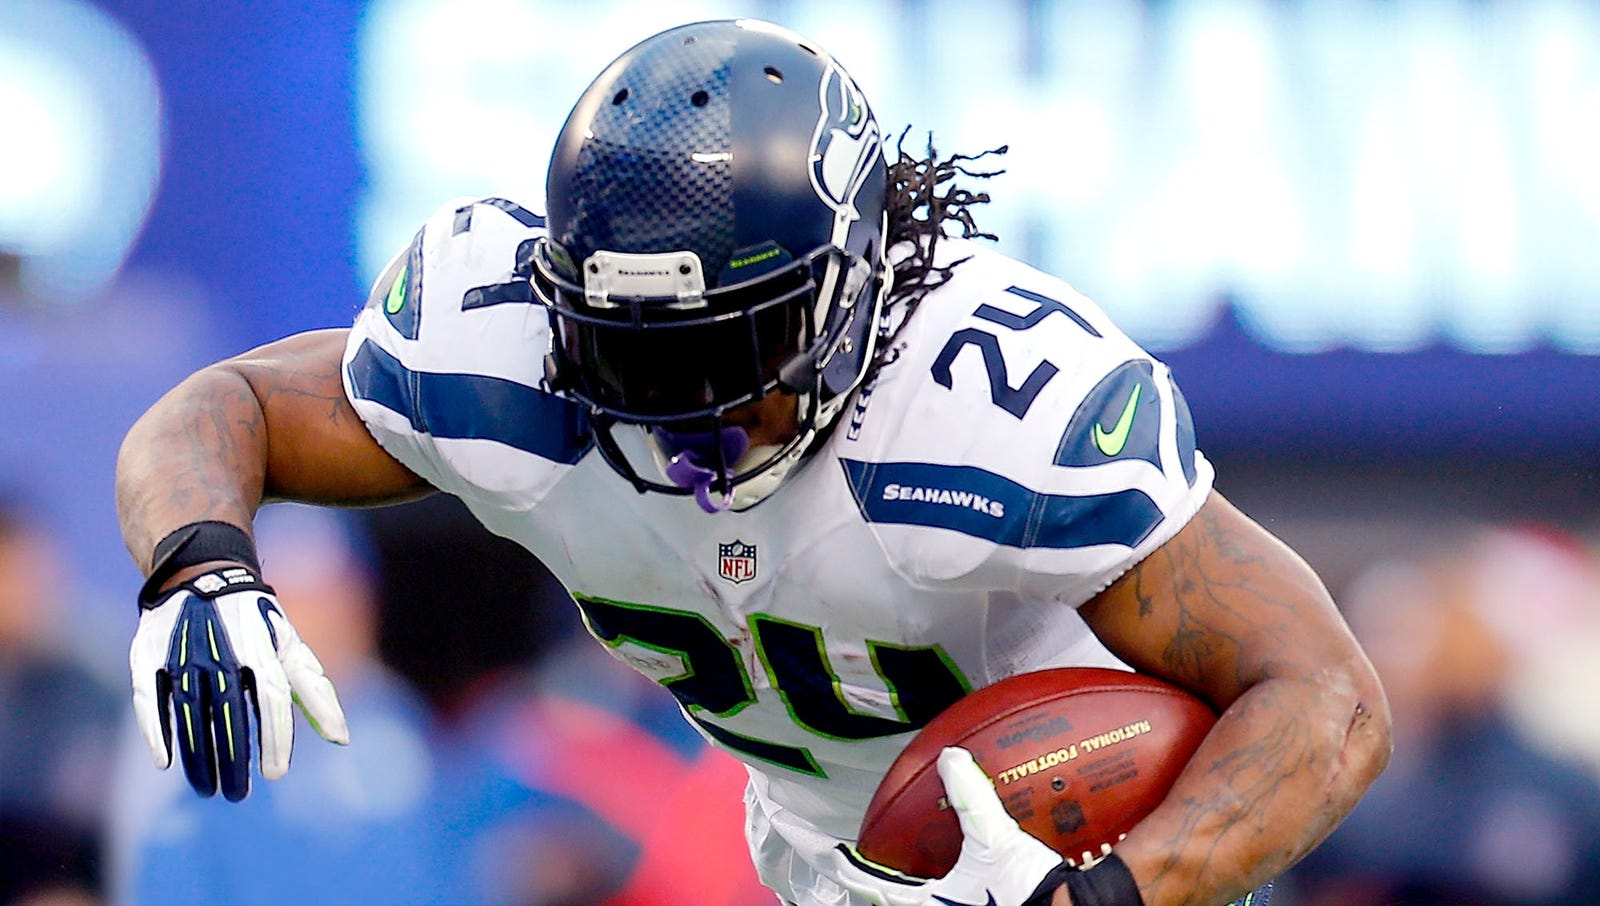 Panicking Marshawn Lynch Unable To Deactivate Beast Mode